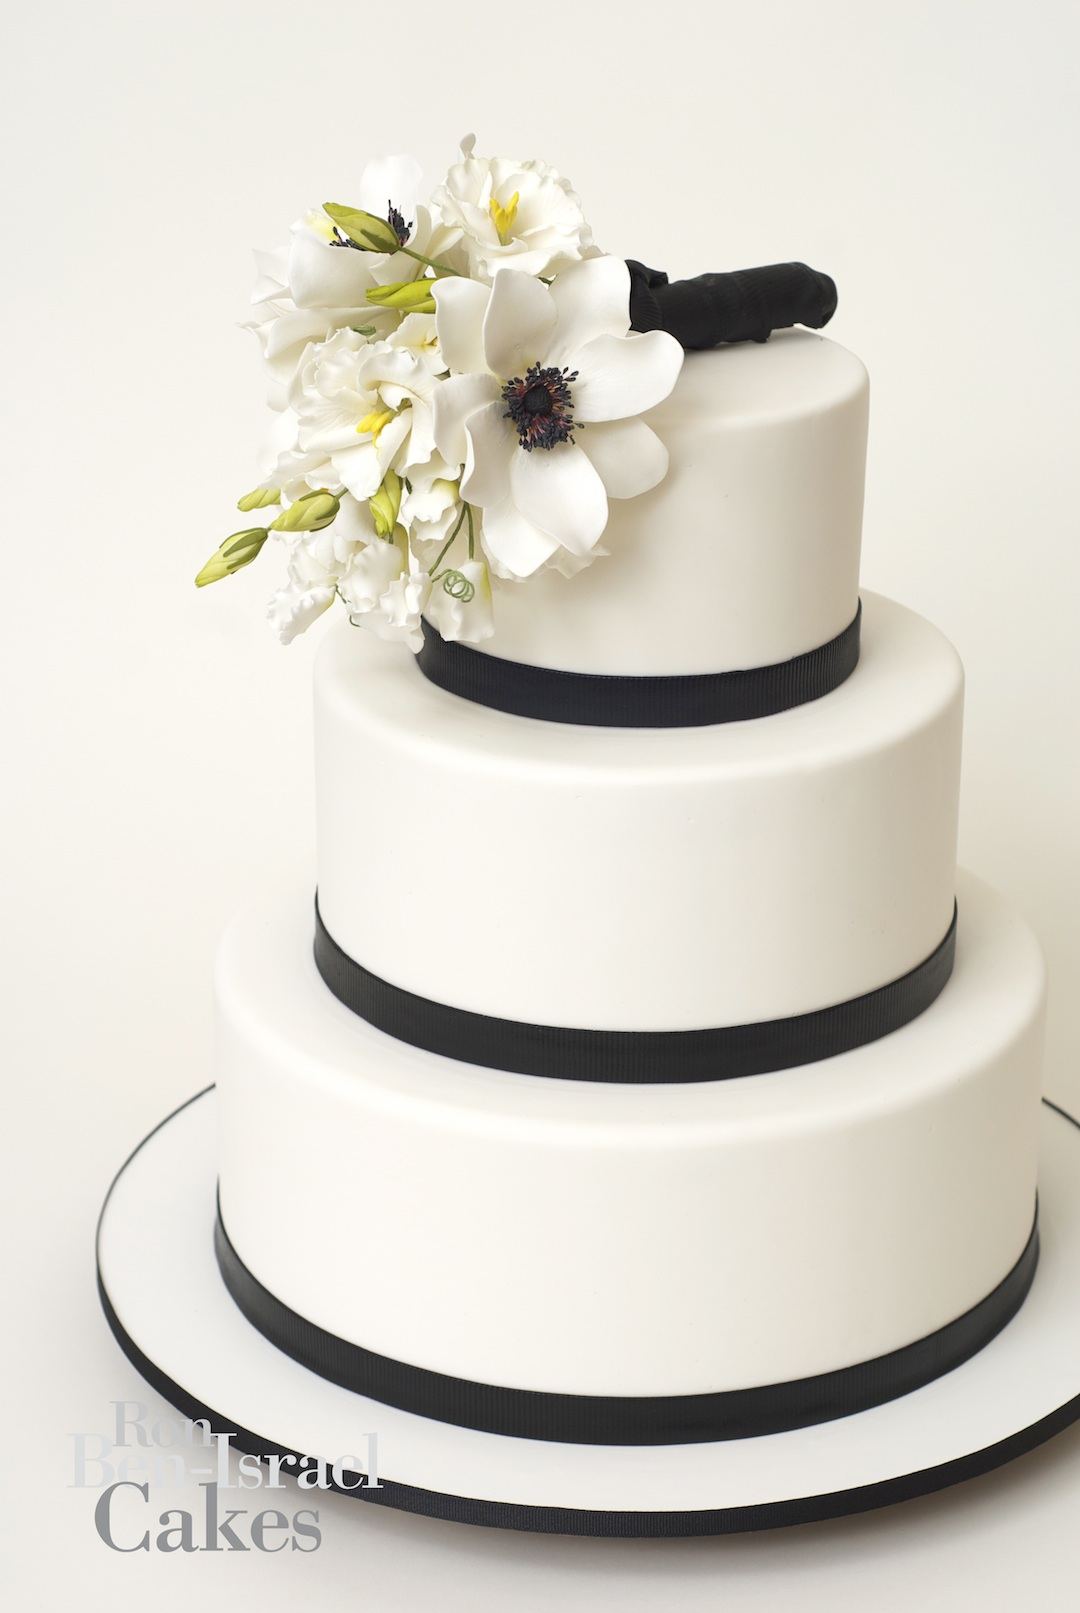 Wedding-cake-inspiration-ron-ben-isreal-wedding-cakes-white-black-classic.original.original